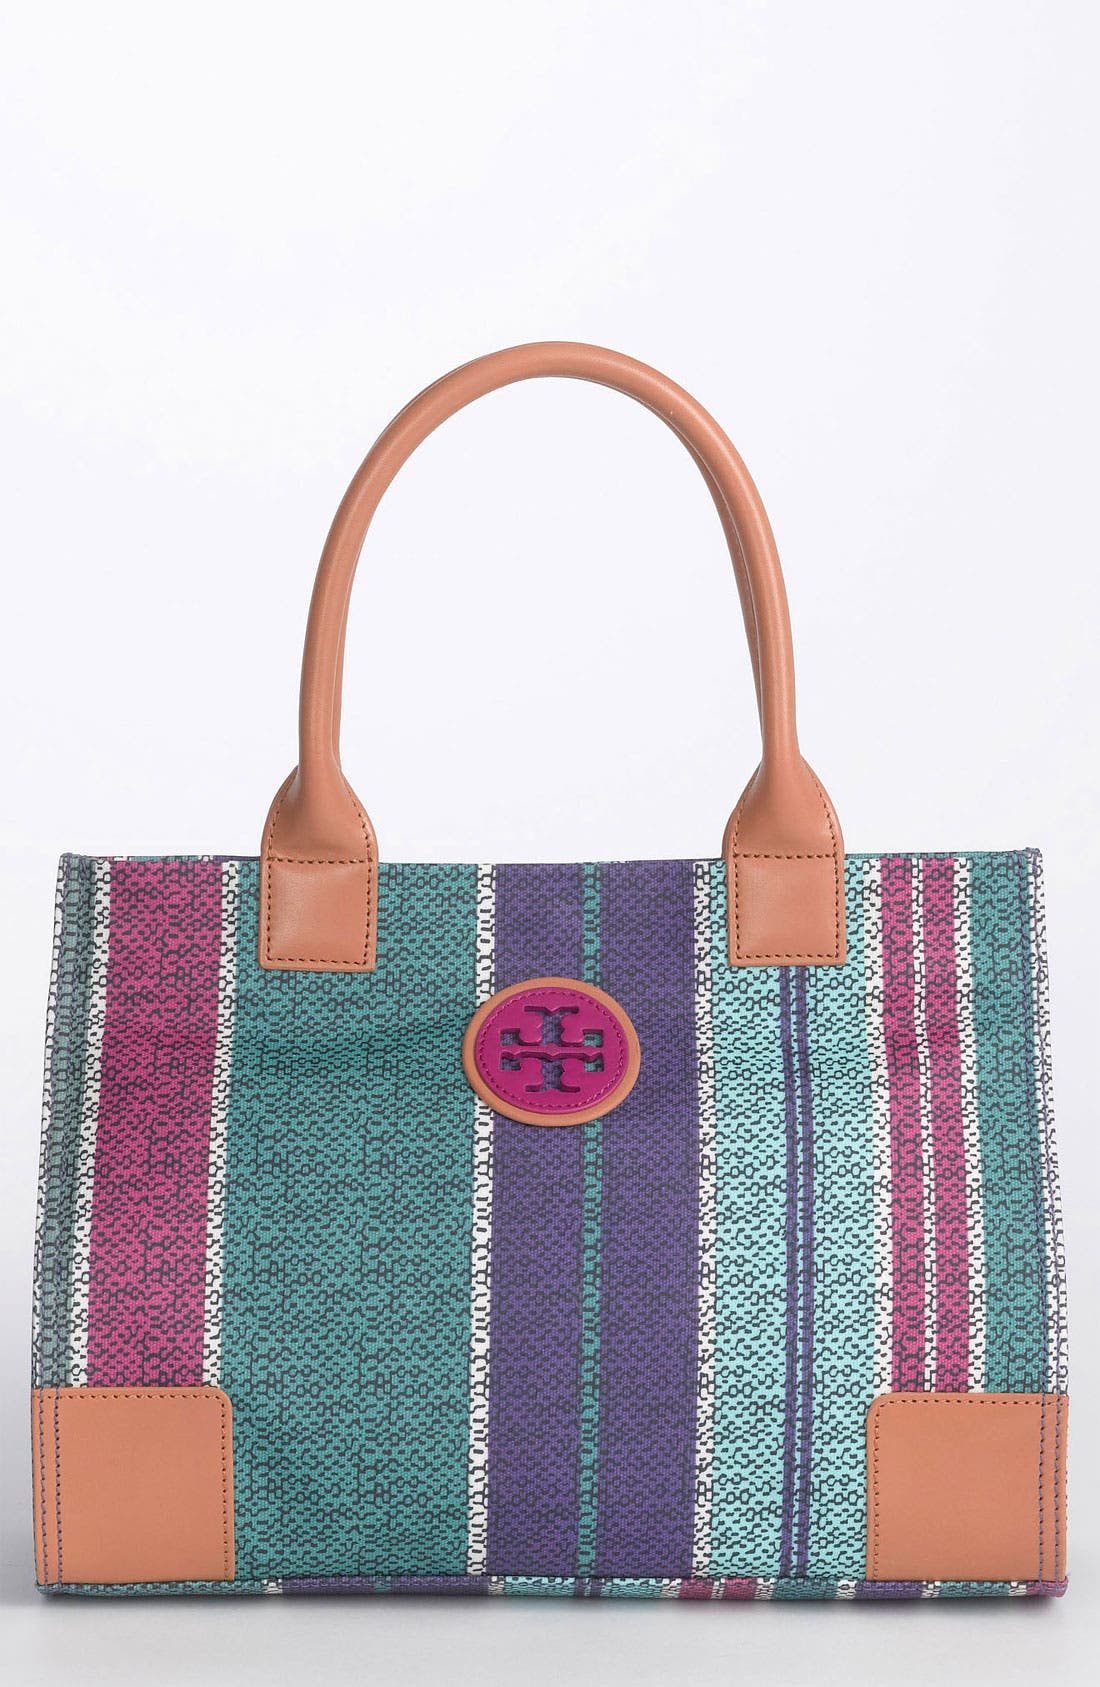 Alternate Image 1 Selected - Tory Burch 'Mini' Coated Canvas Tote